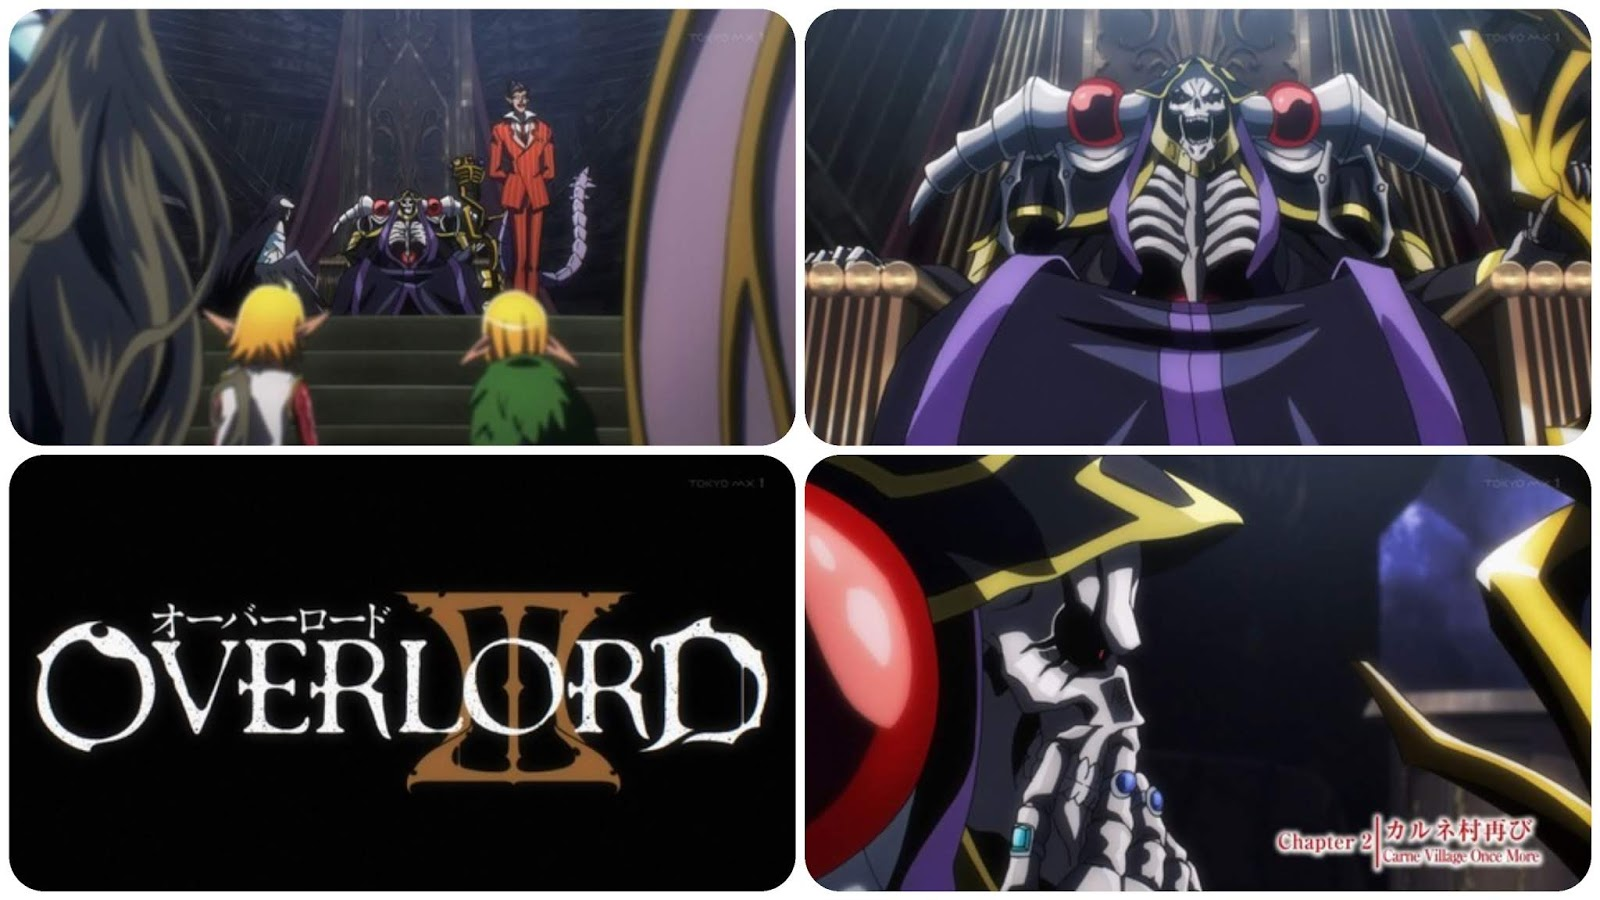 Overlord 3 Episode 5